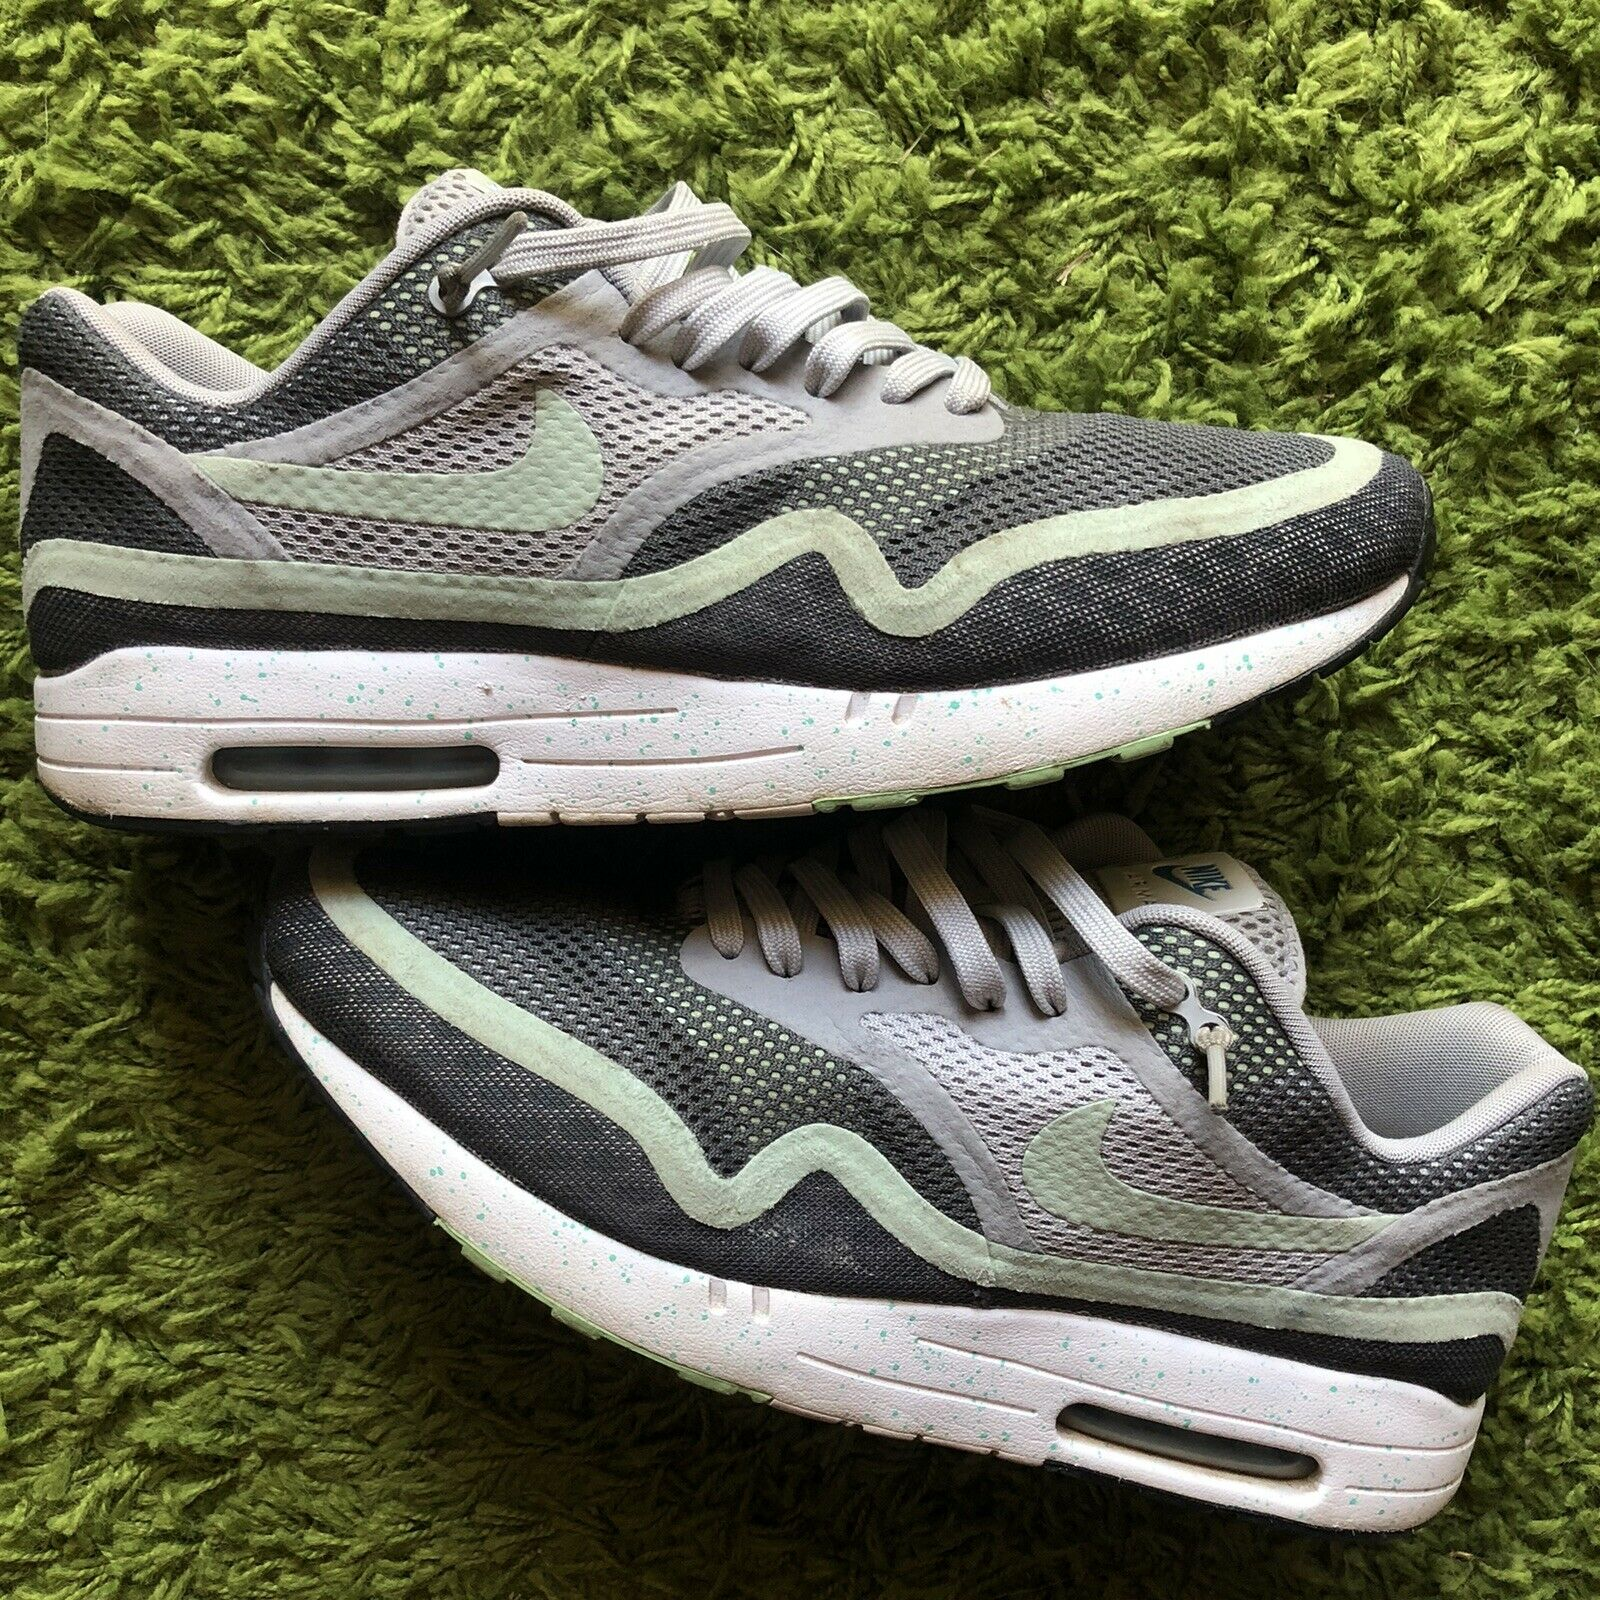 Nike Air Max 1 'Moire' Us12 Am 1 90 95 97 98 Be Tailwind Tn